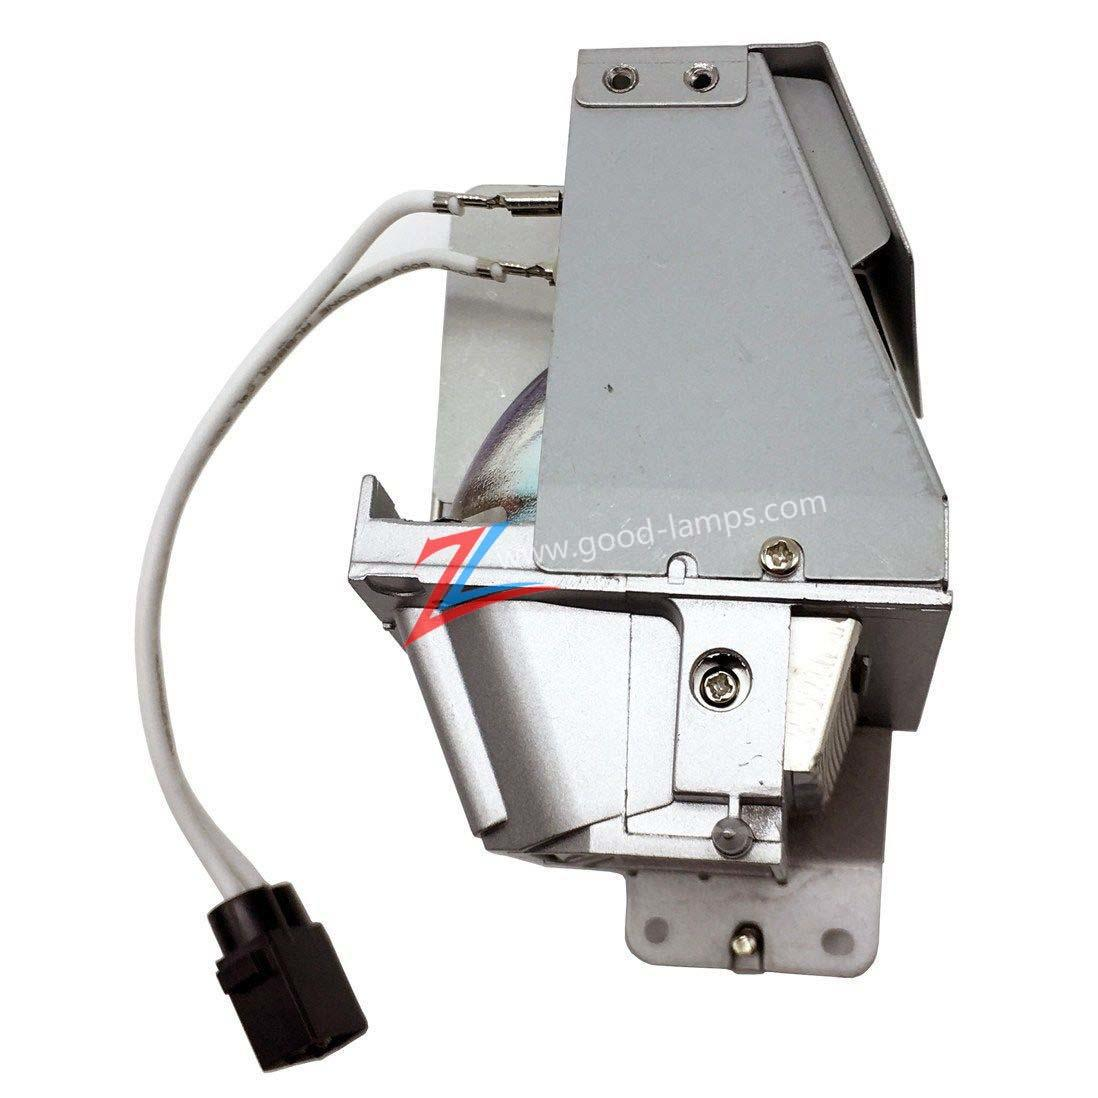 High quality projector lamp MC.JH111.001 for ACER H5380BD P1283 P1383W X113H X113PH X1383WH